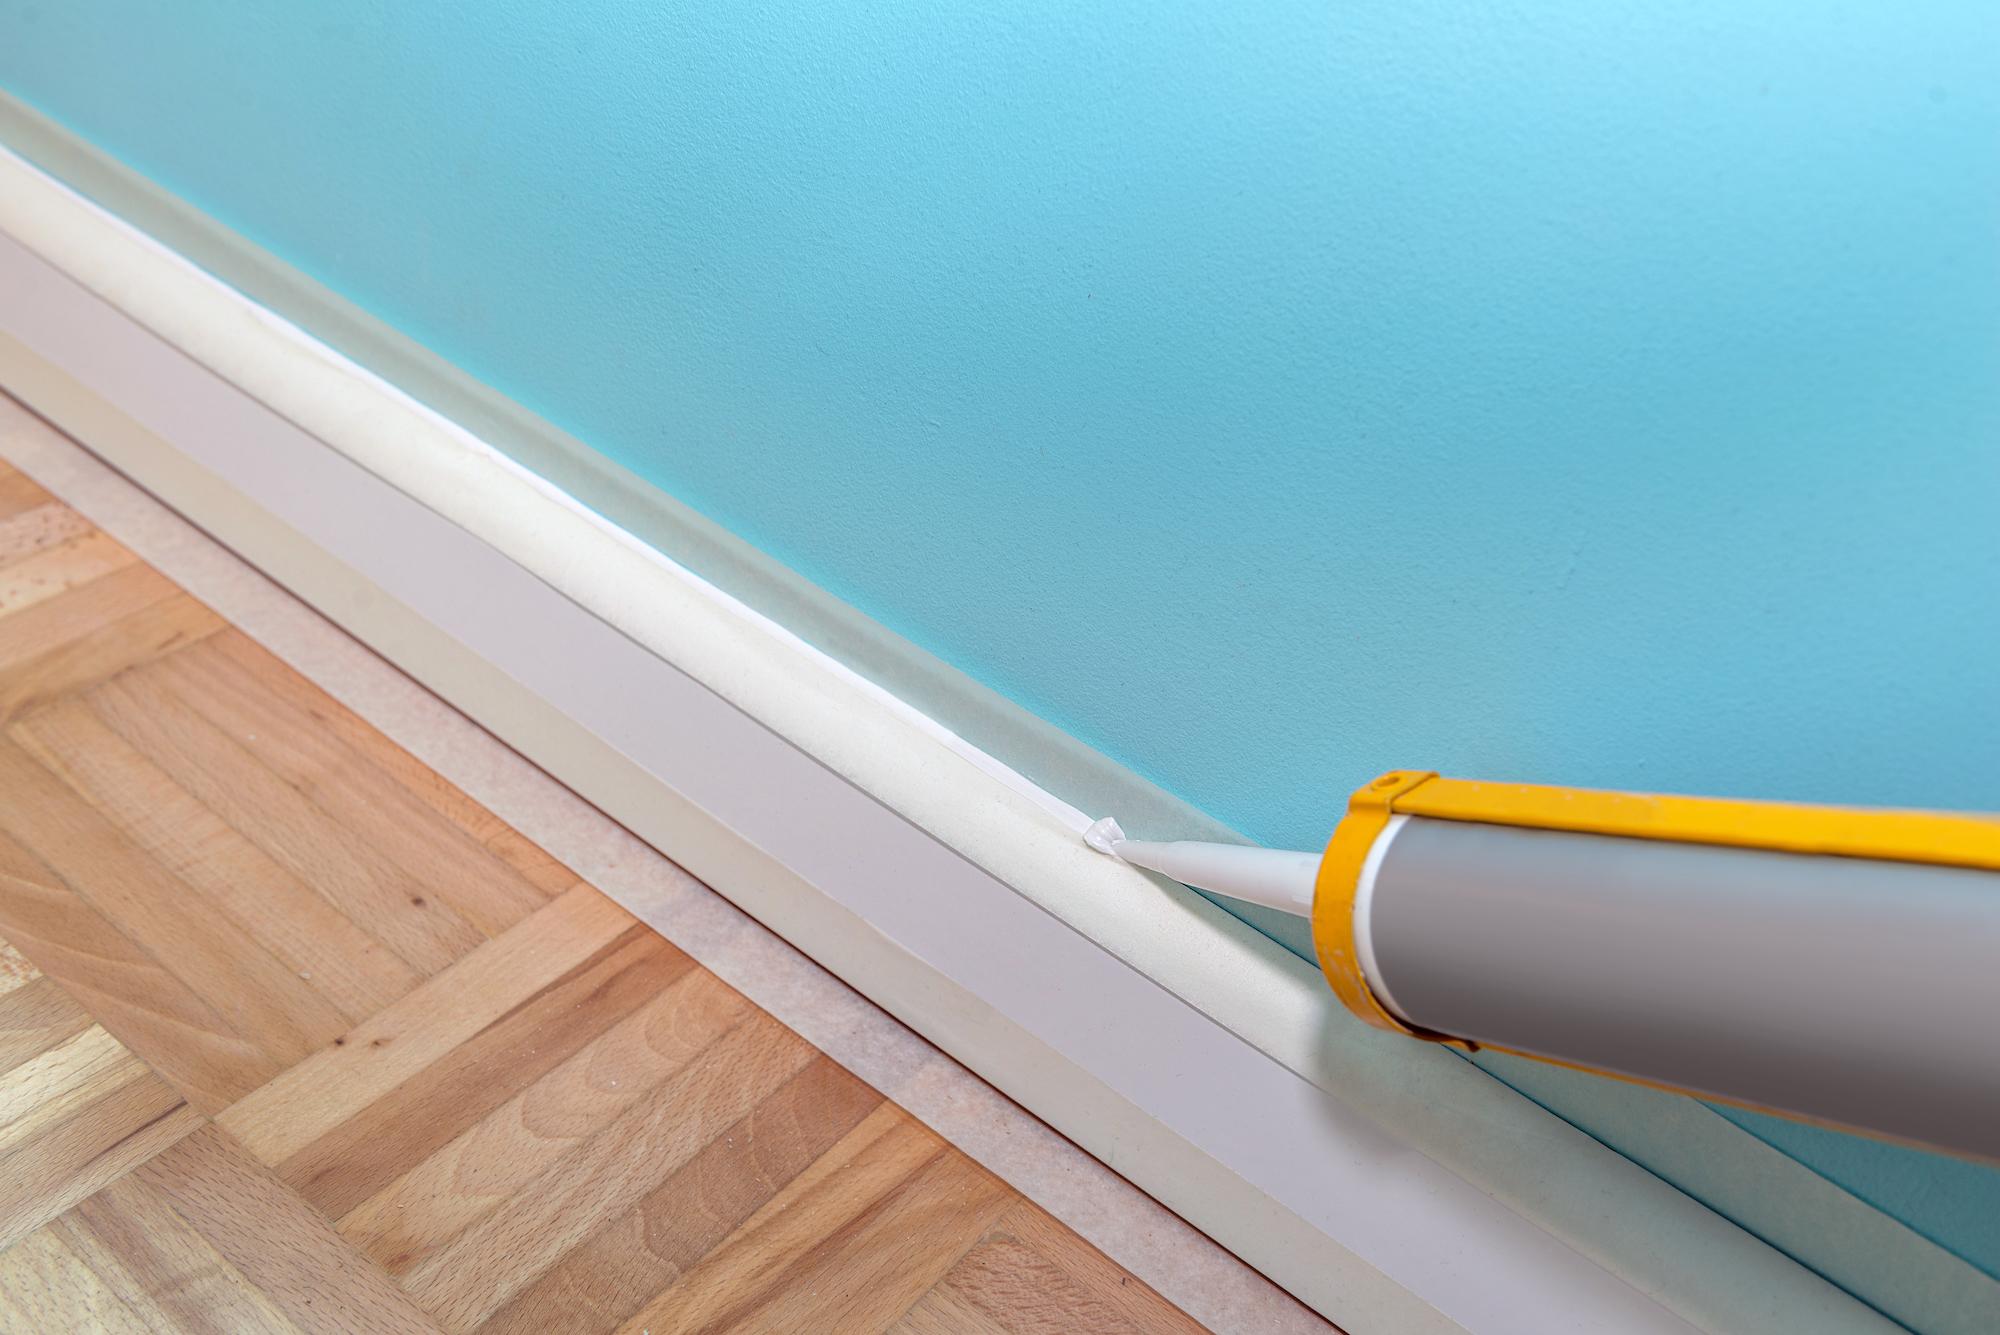 How to Prep Walls for Painting, Caulk